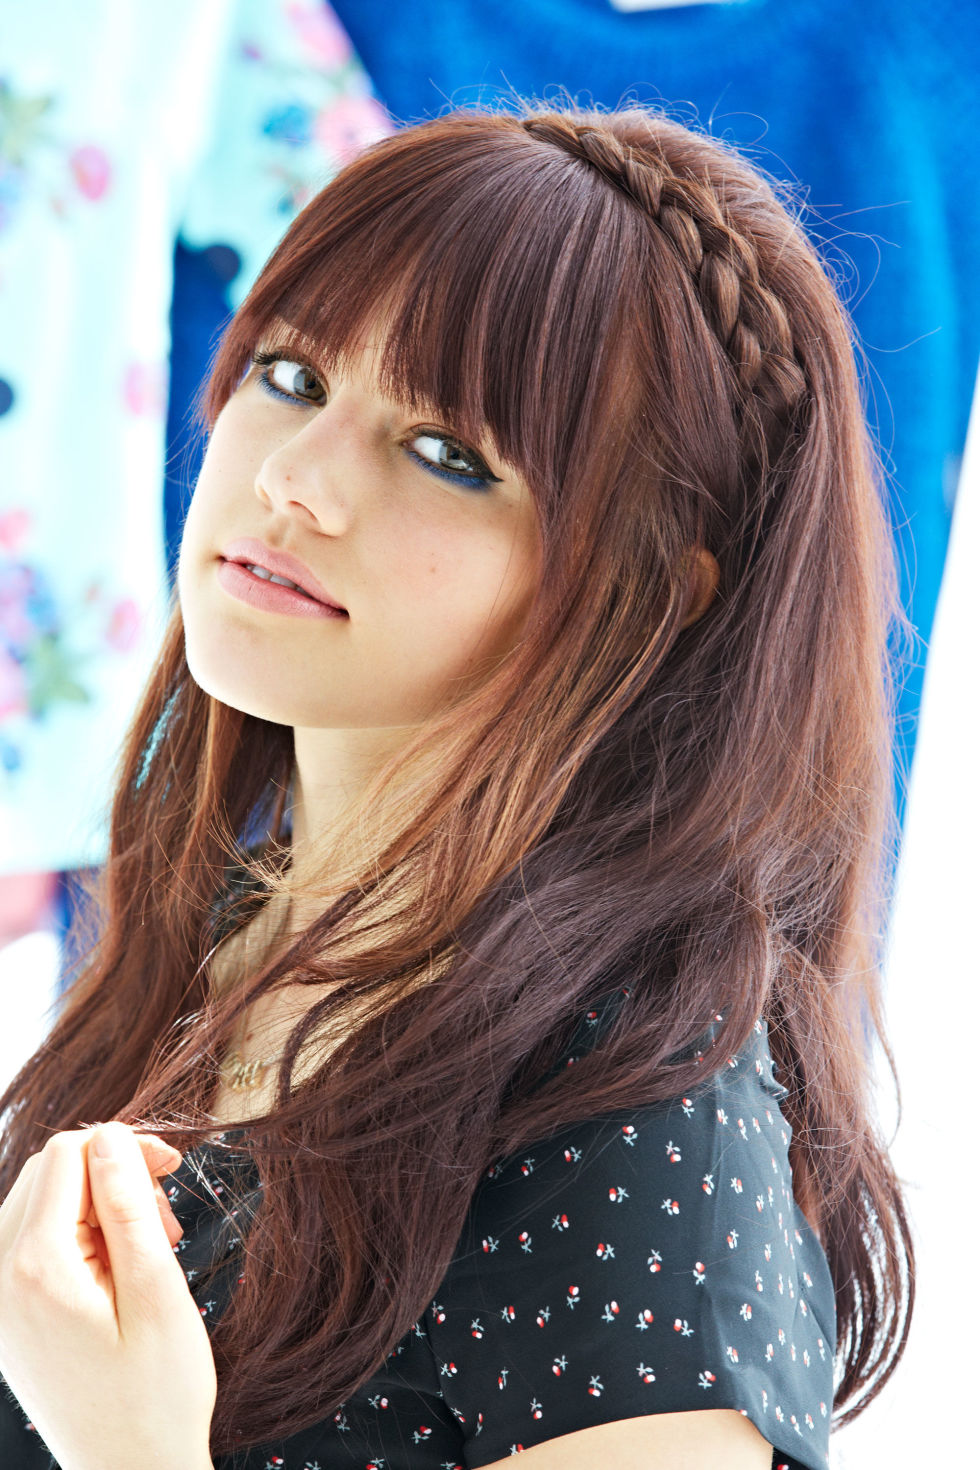 Marvelous 7 Hairstyles With Bangs In 2016 How To Style Bangs Short Hairstyles For Black Women Fulllsitofus